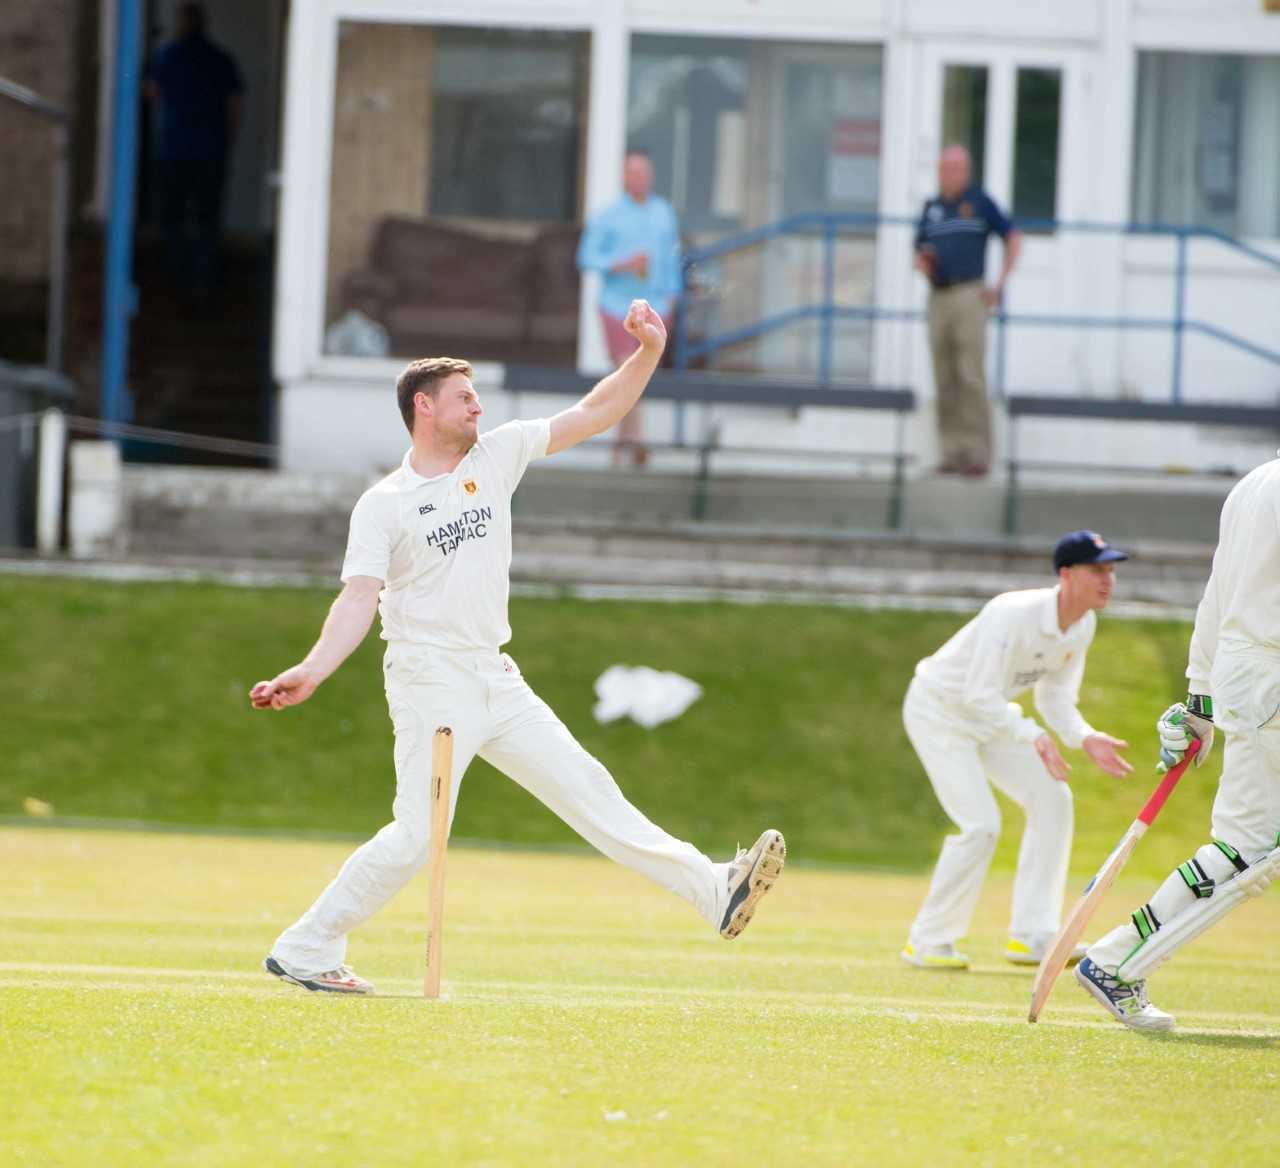 SPIRITED DISPLAY: The Prestwick bowling attack gave Greenock a torrid time.